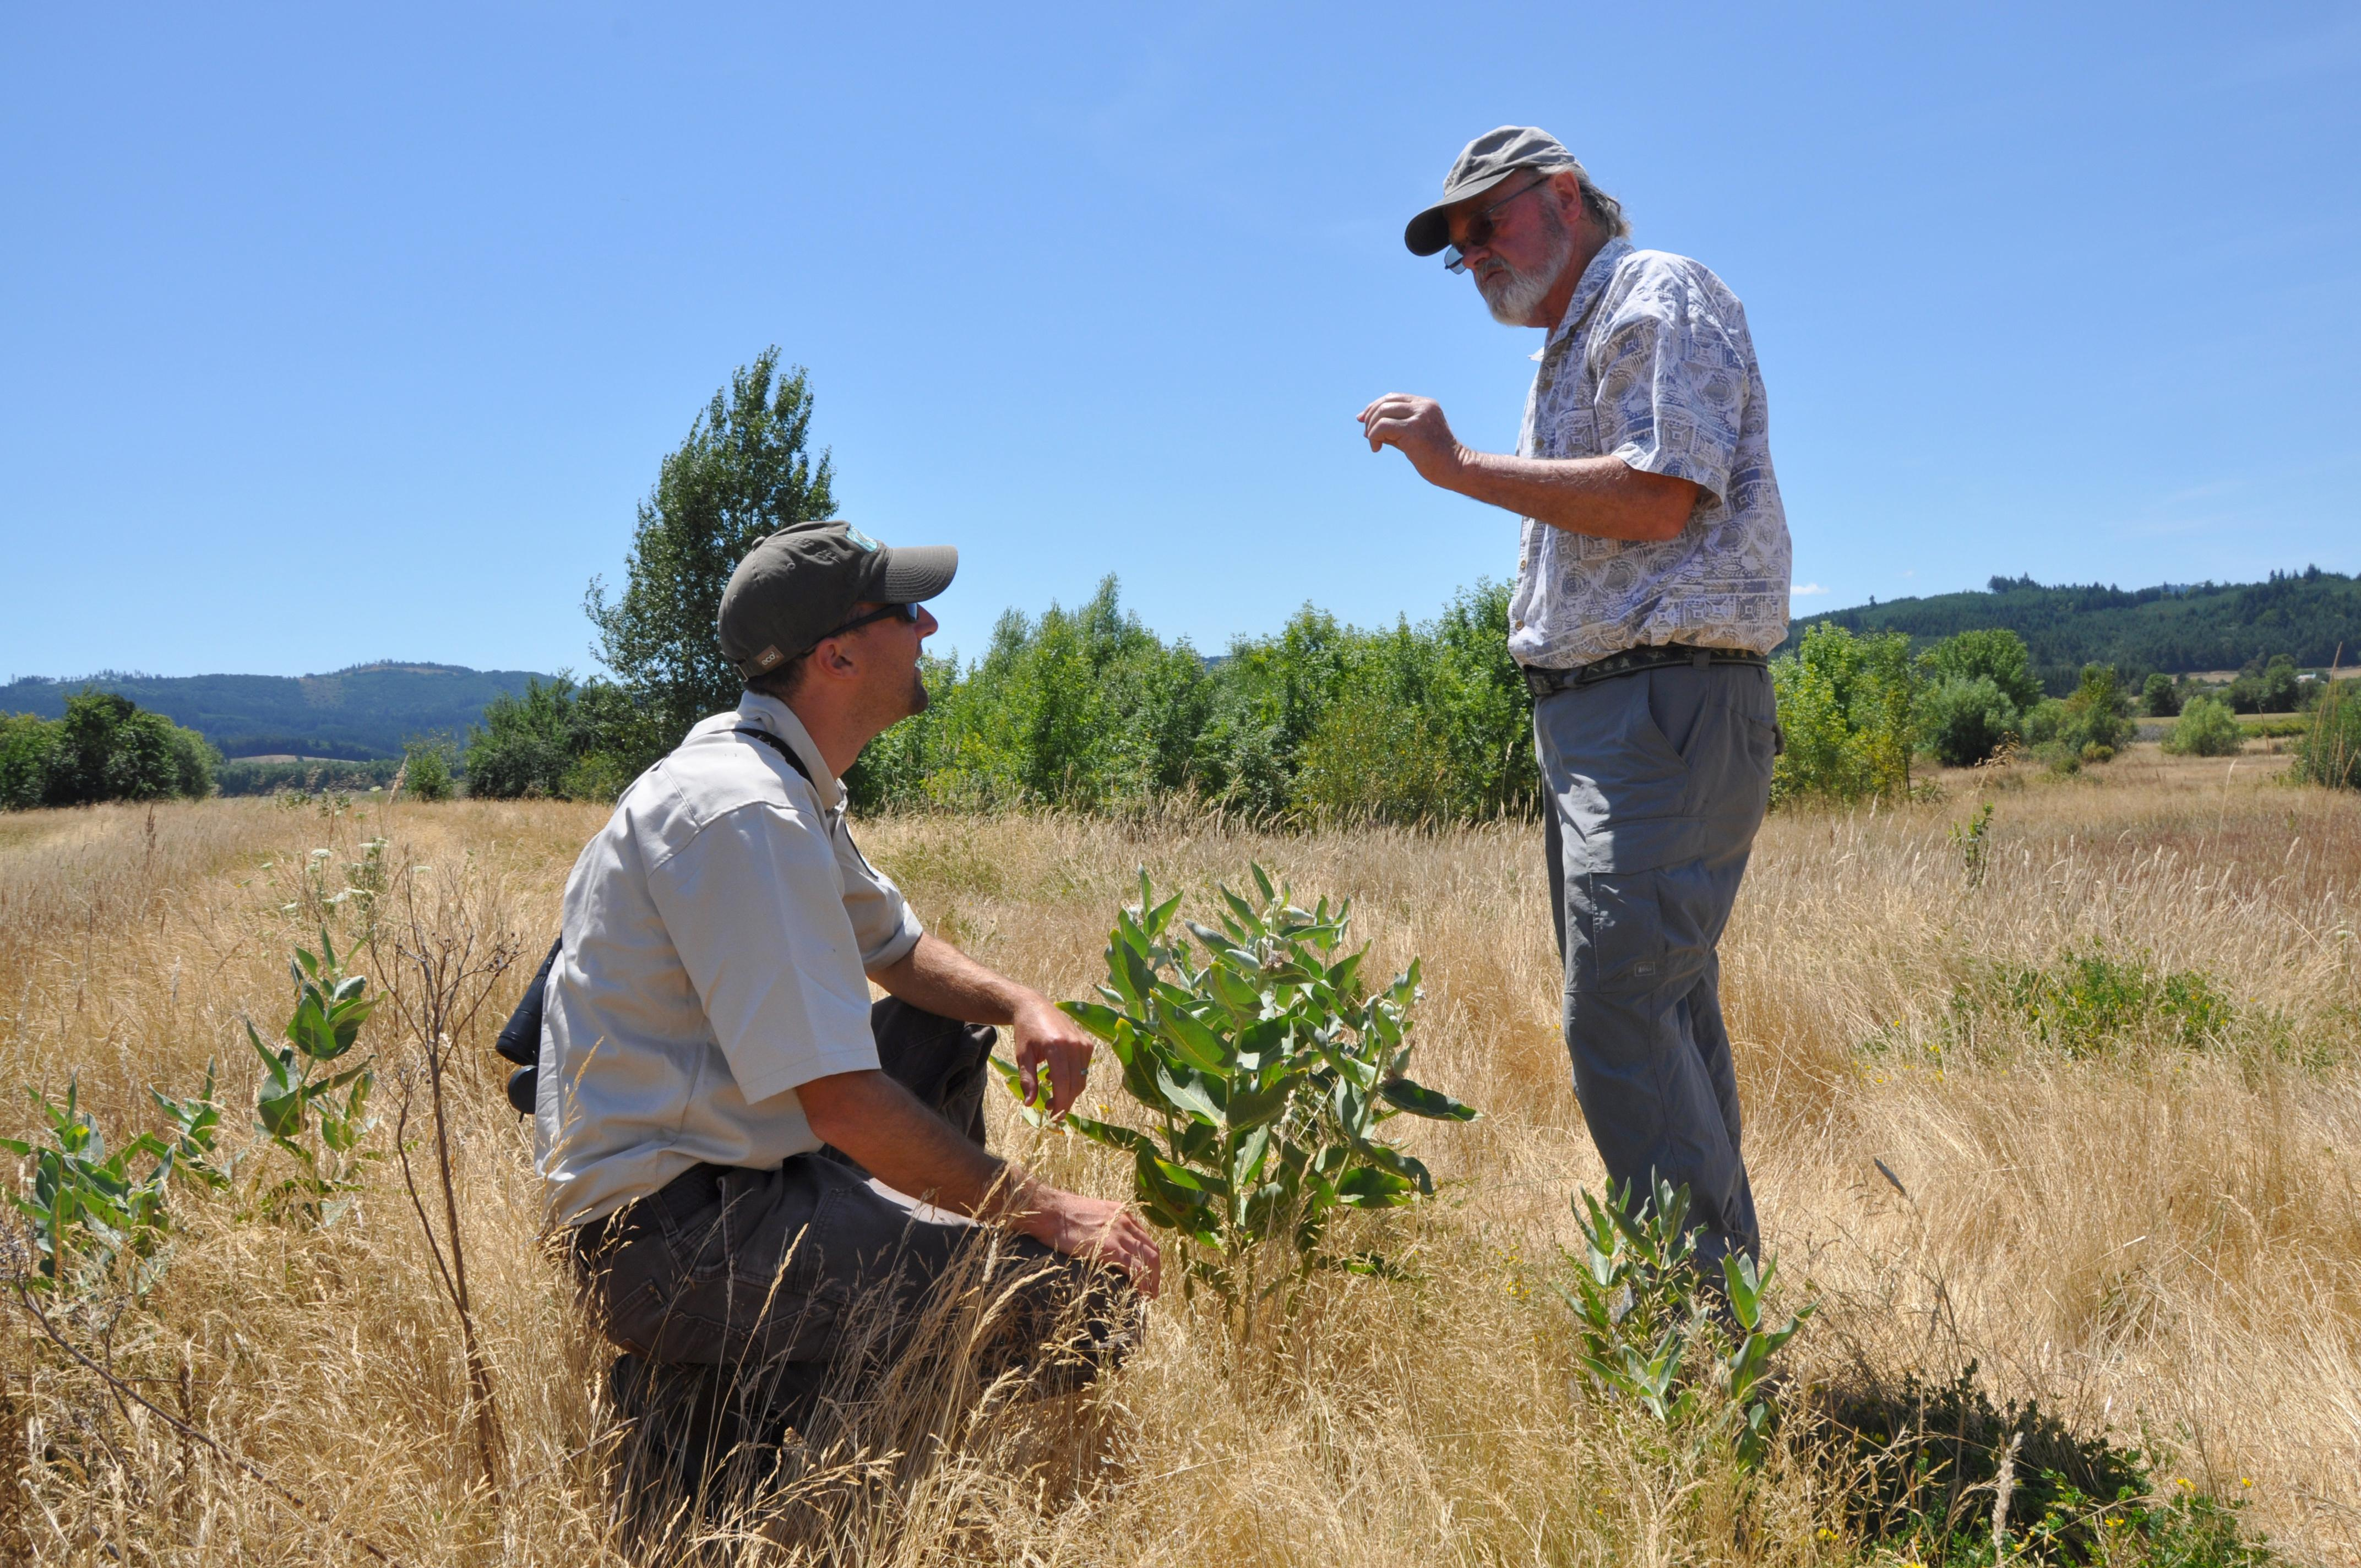 USDA has a wide variety of options for landowners wanting to improve pollinator habitat on their land while improving the bottom line of their operation.